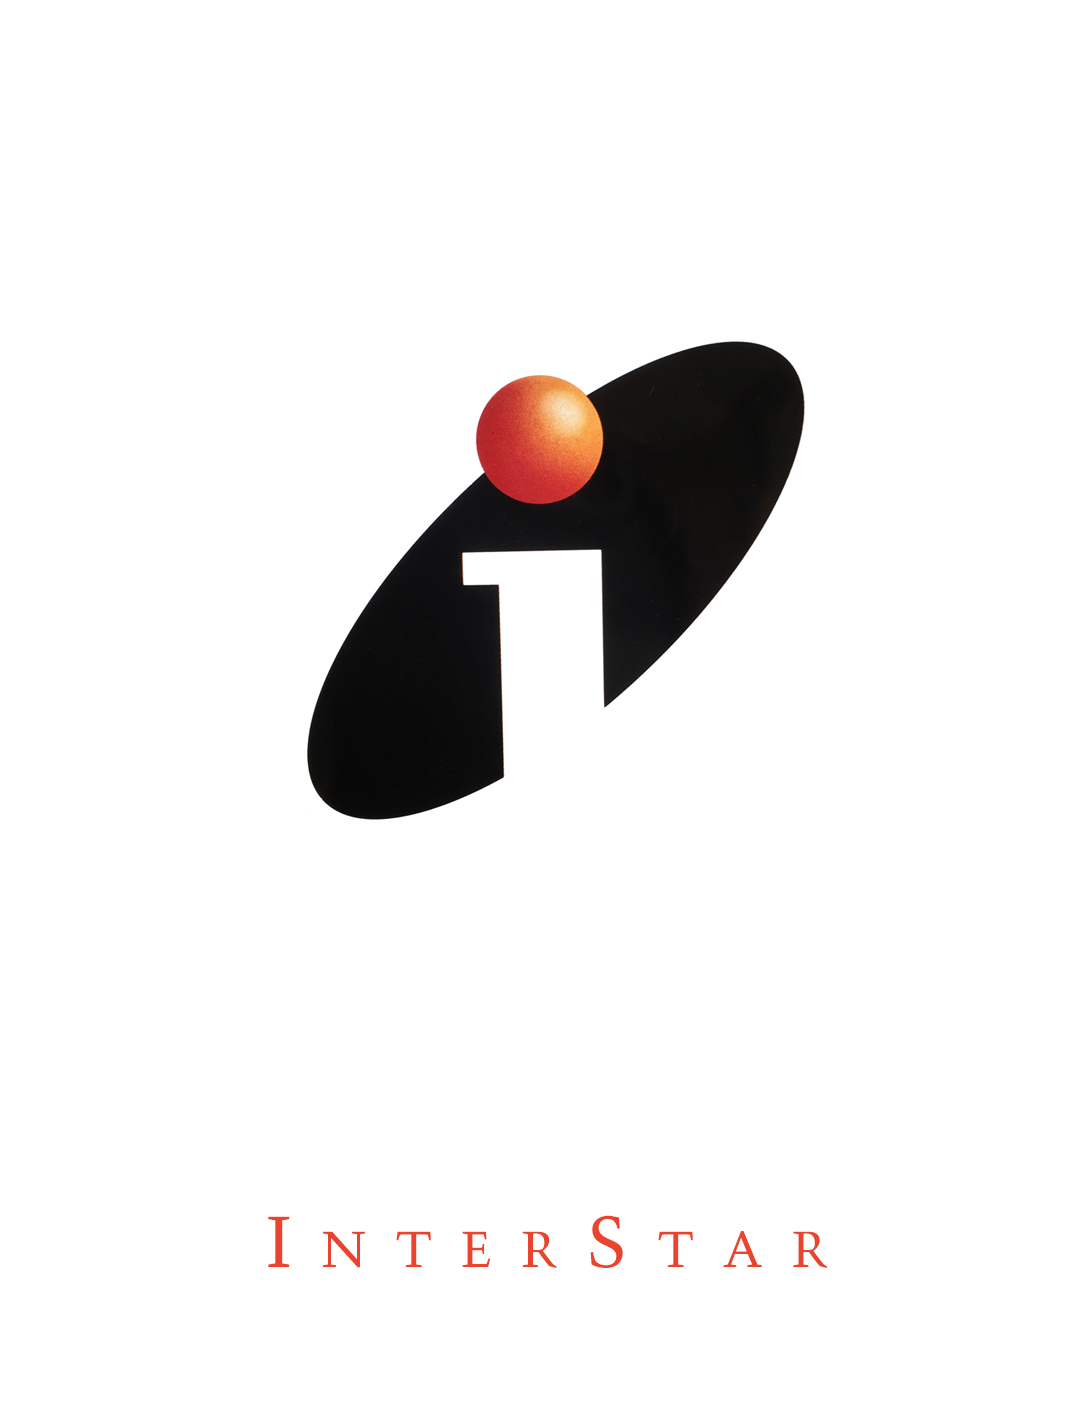 Interstar.logo.jpg